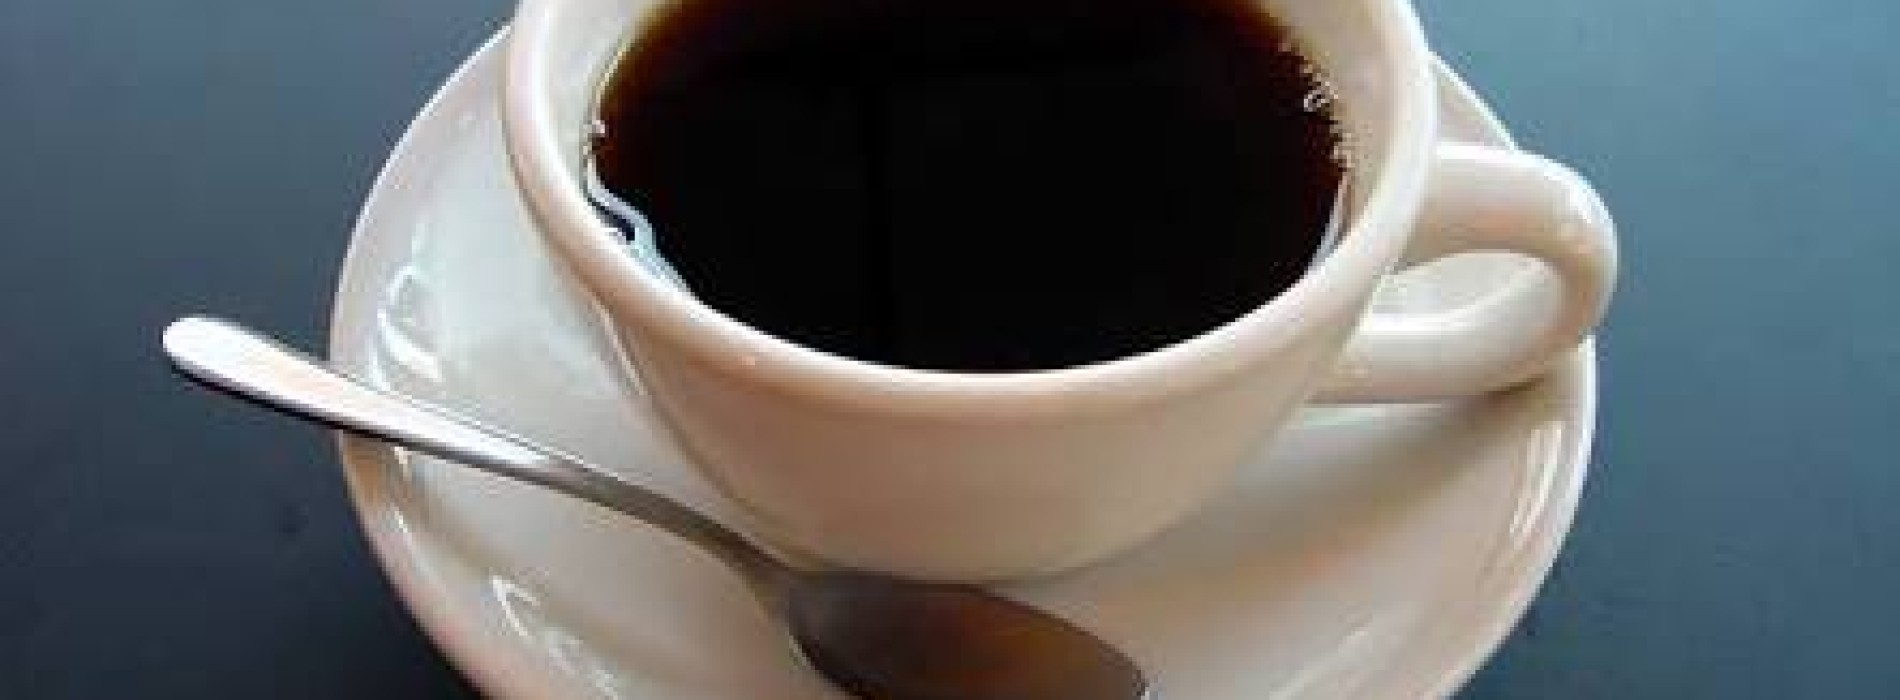 Moderate coffee drinking may be linked to reduced risk of death